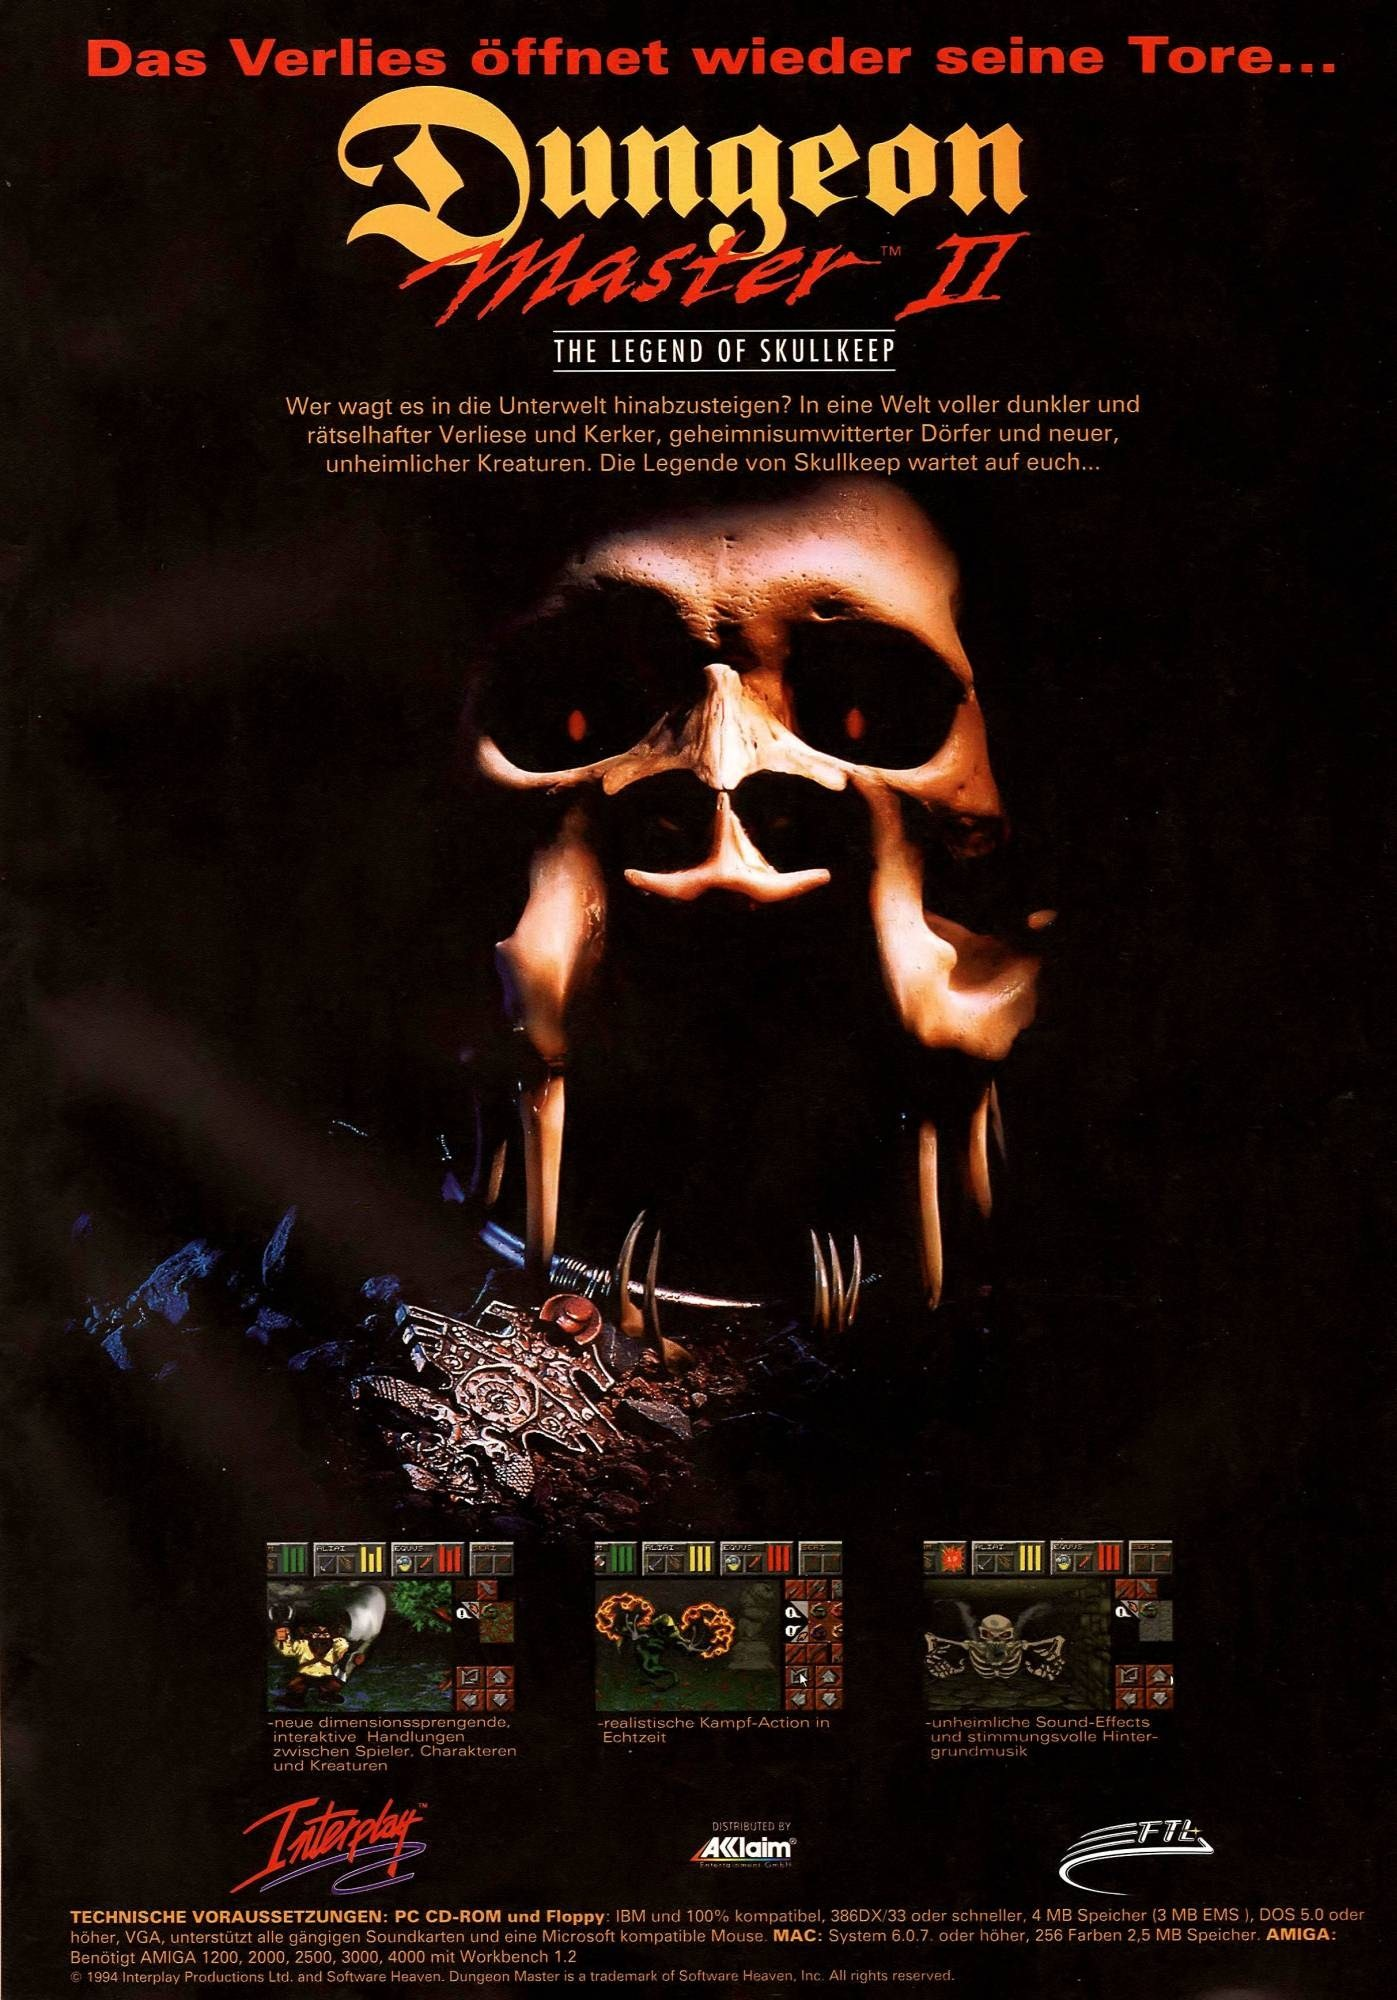 Dungeon Master II for PC Advertisement published in German magazine 'PC Games', September 1995, Page 47